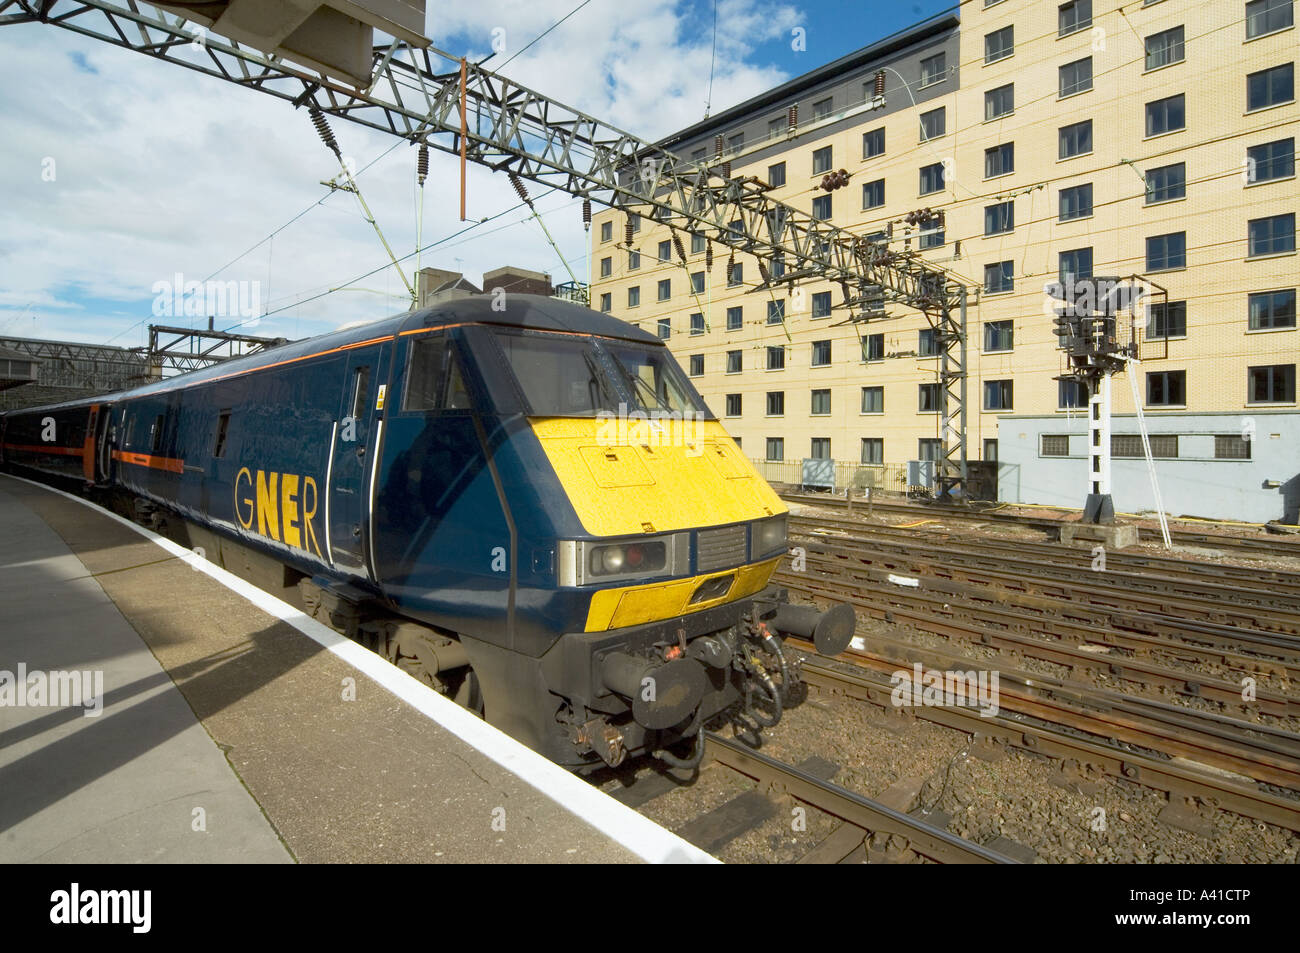 The R2427A Mallard train Flying Scotsman Train belonging to GNER at Glasgow Central Station. - Stock Image